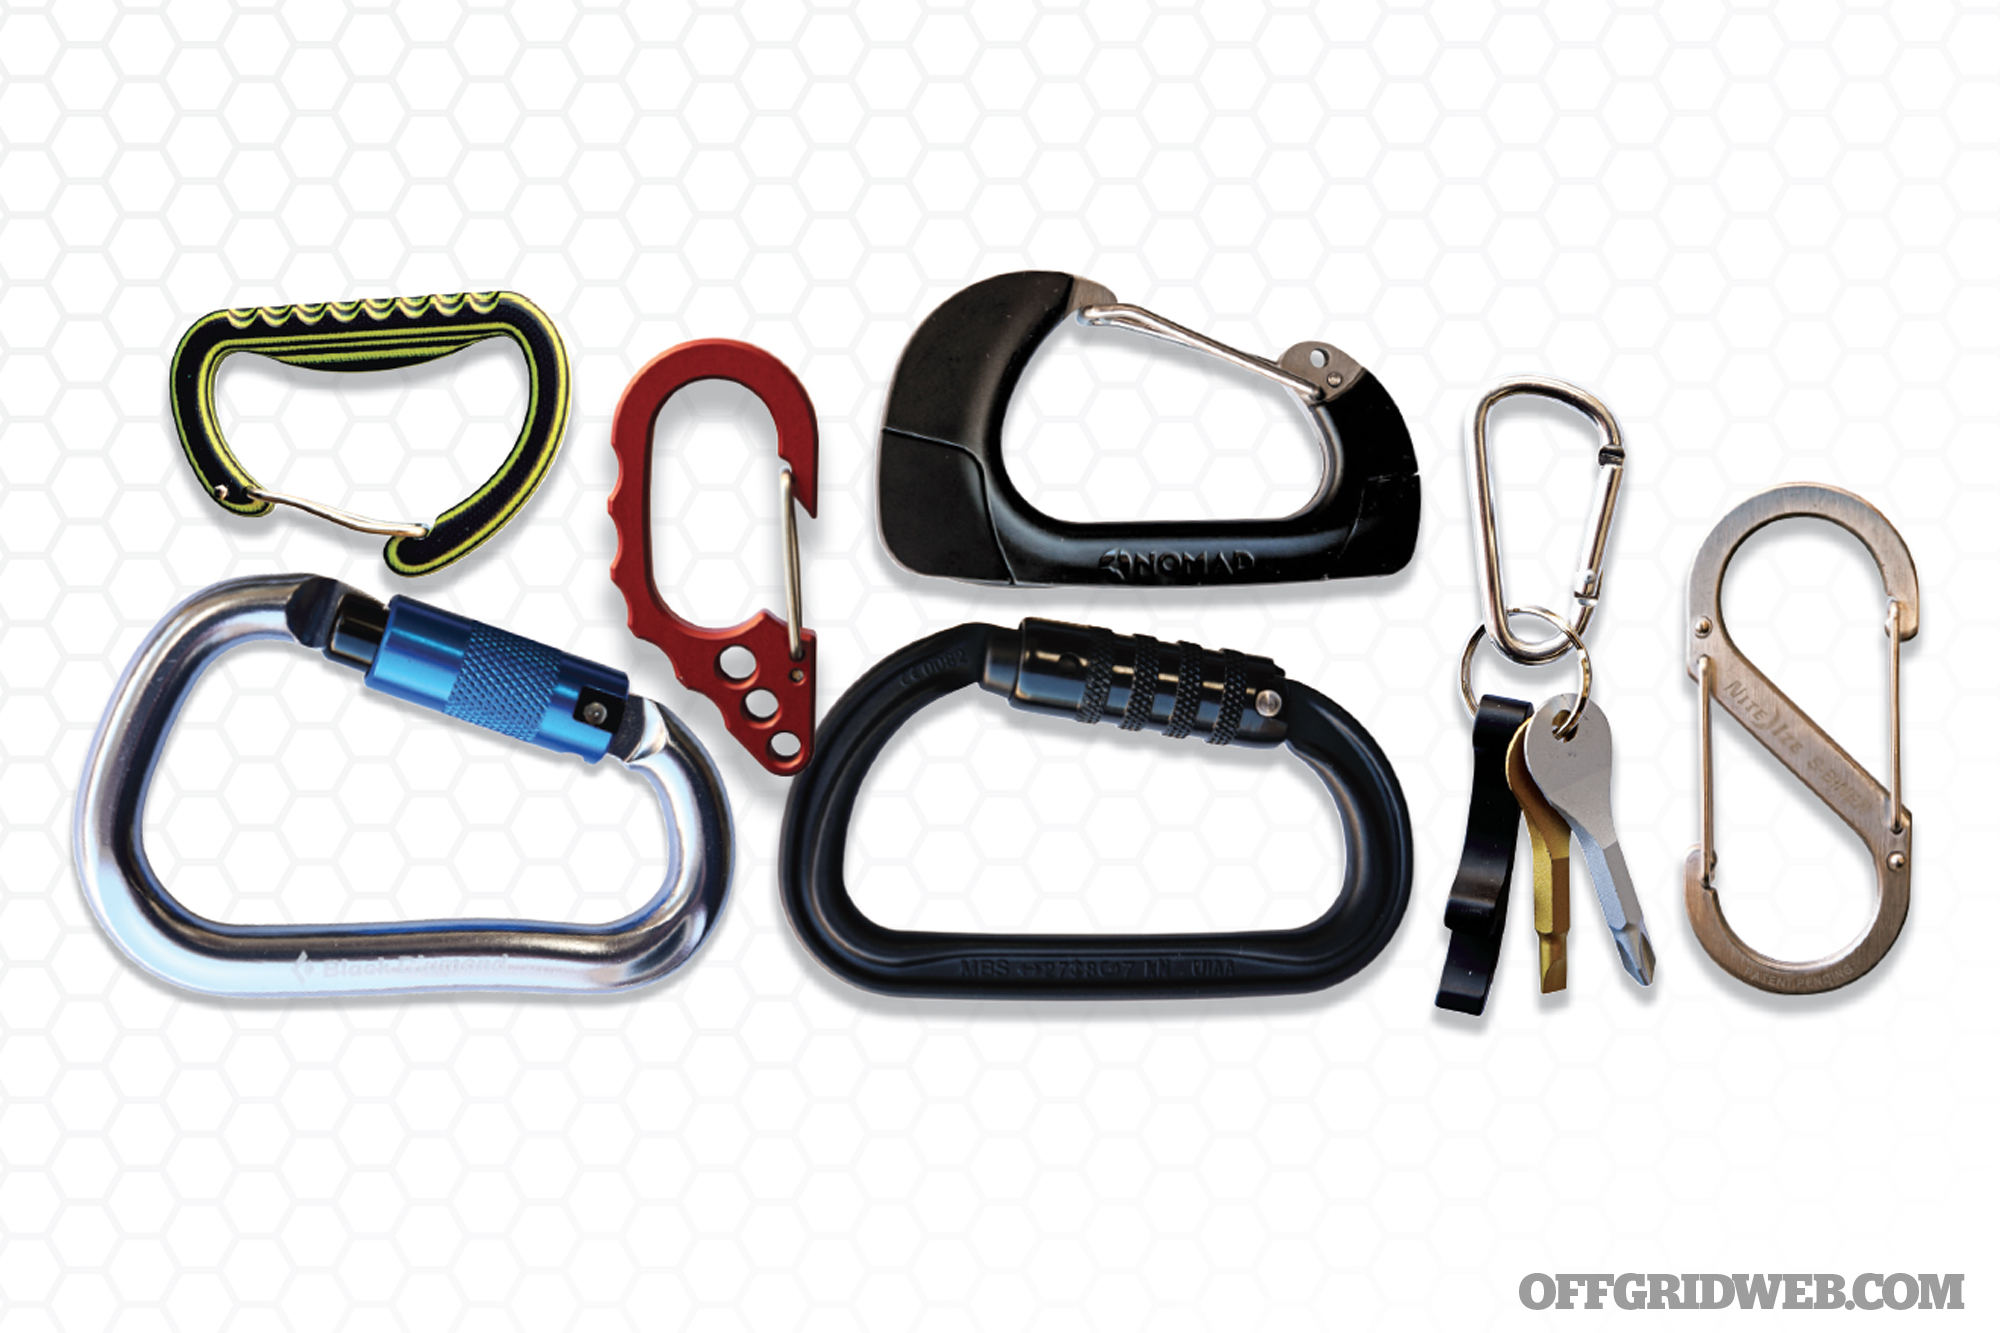 Carabiner-EDC-OFGP-180600-POCKET-lead